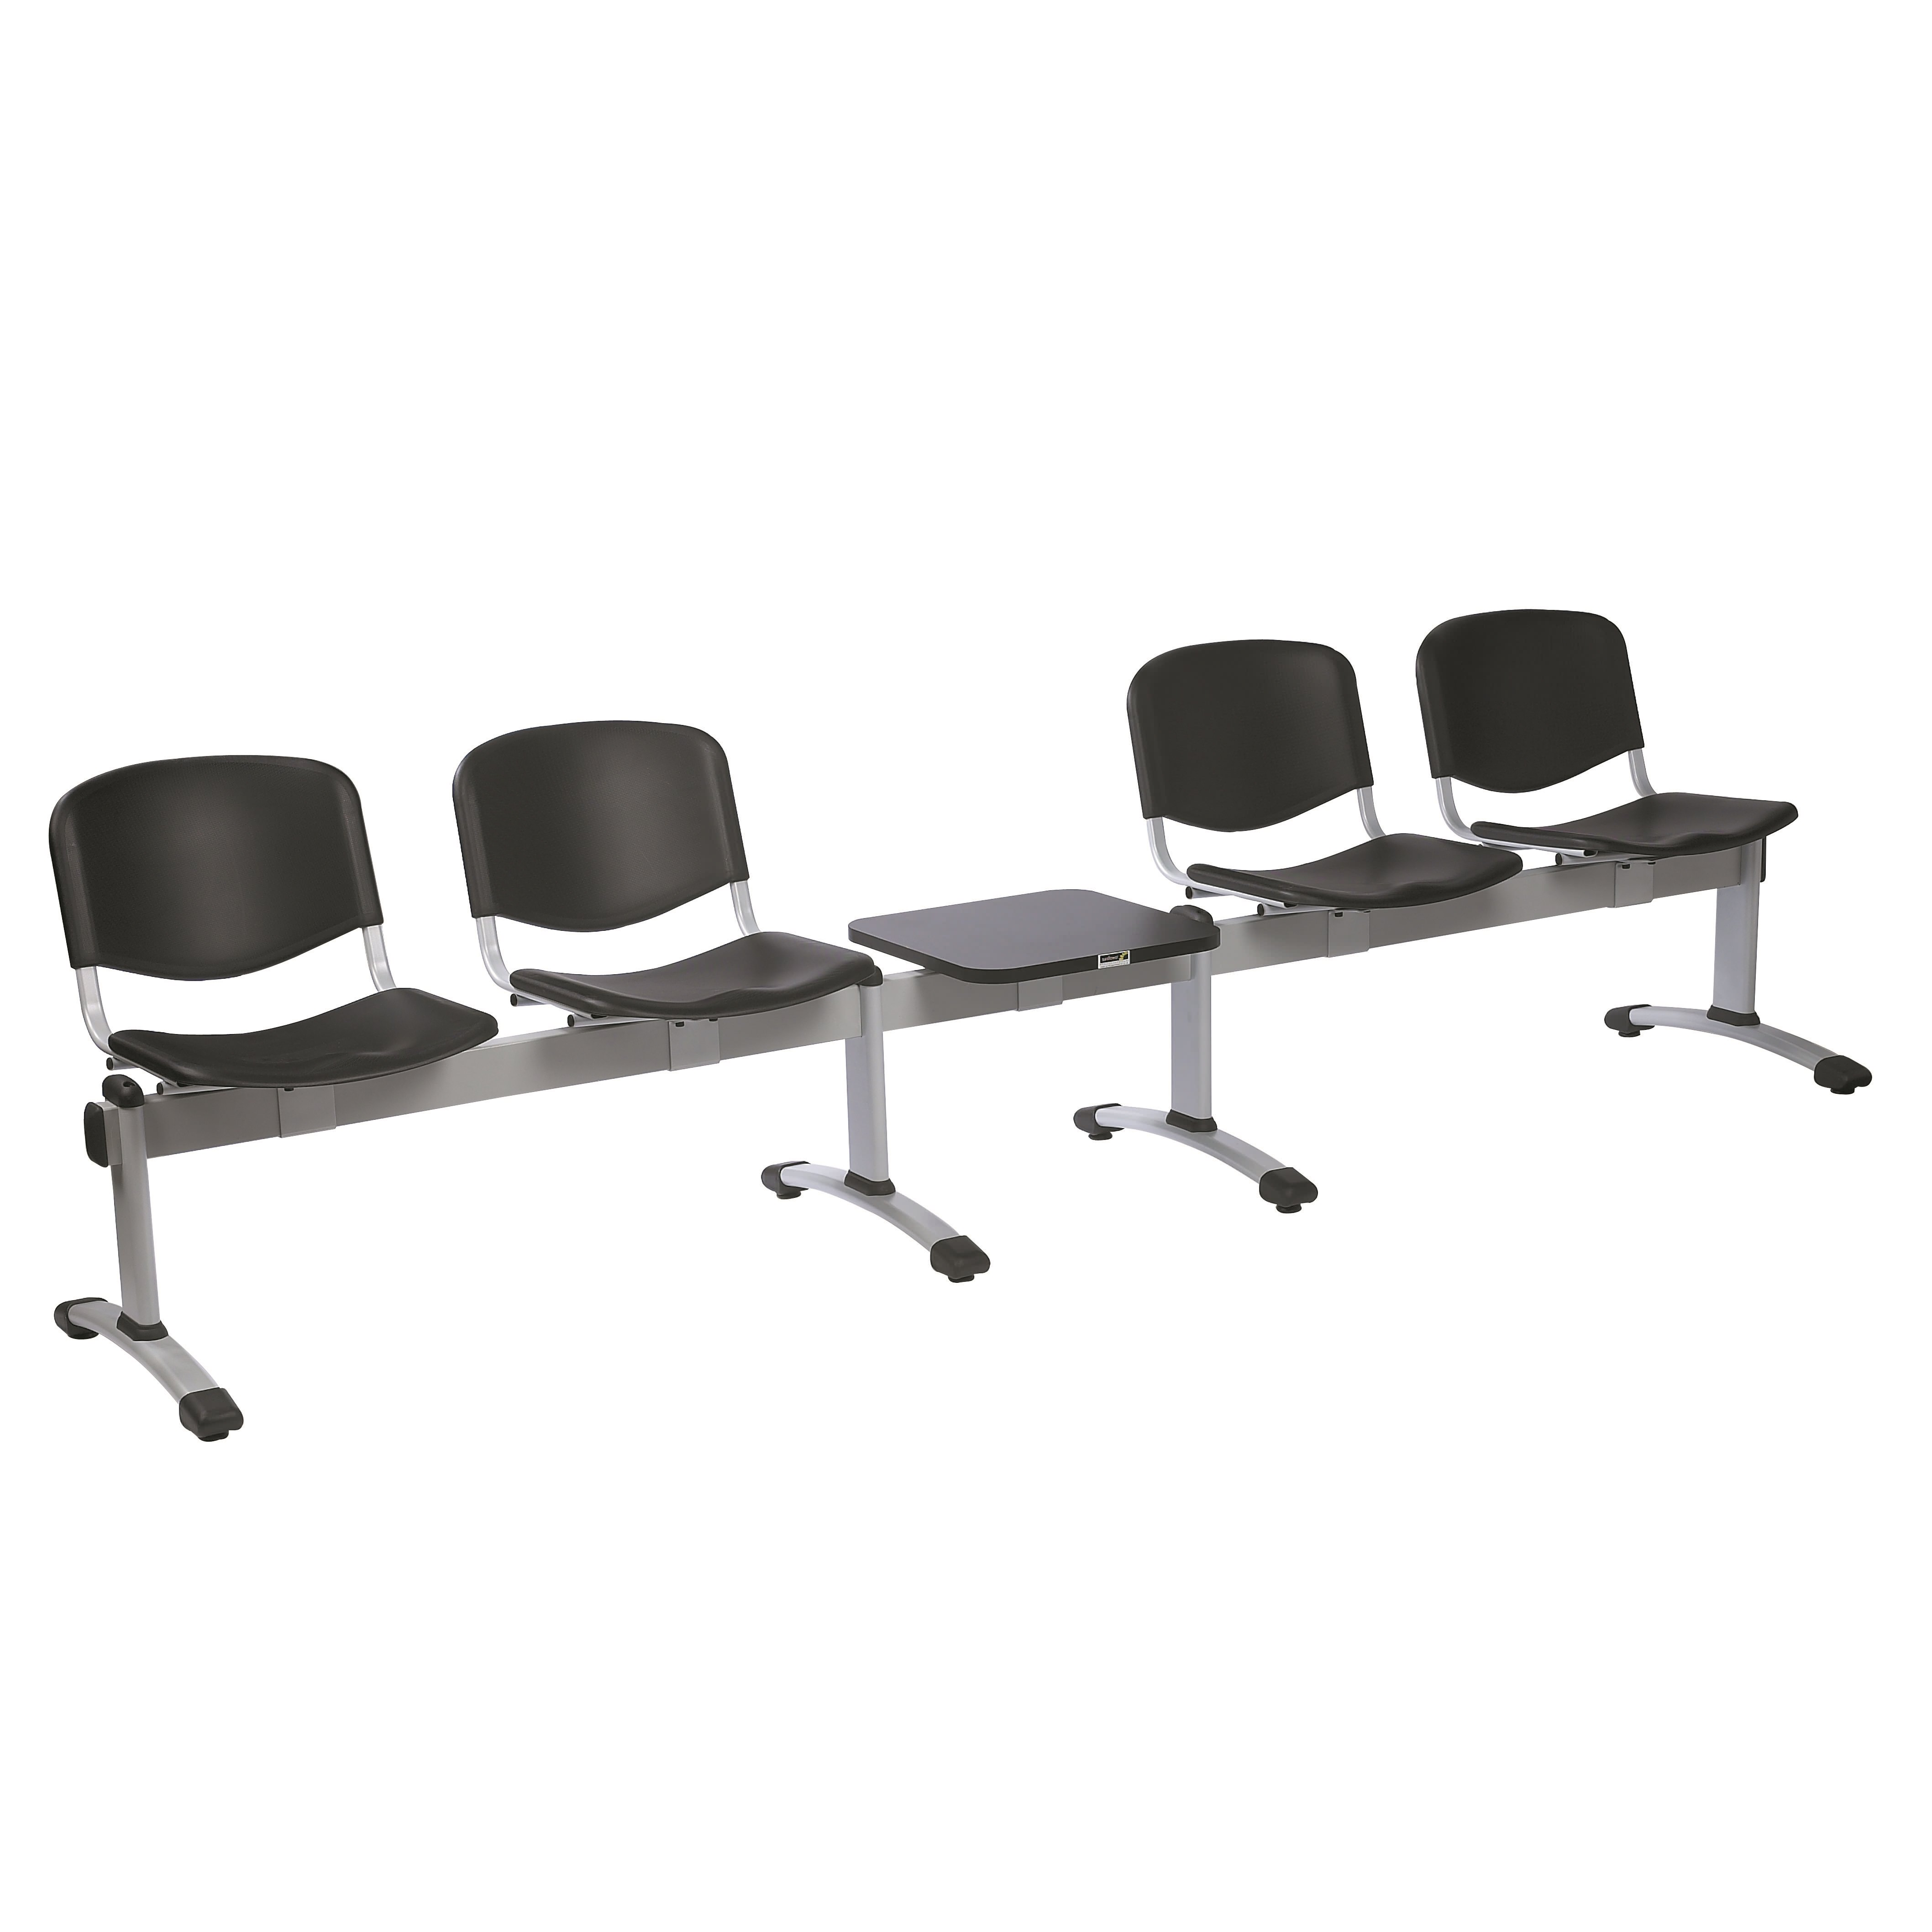 Venus Visitor Chair Module Seating 4 Seats/Backs & 1 Magazine Table | Medical Supermarket